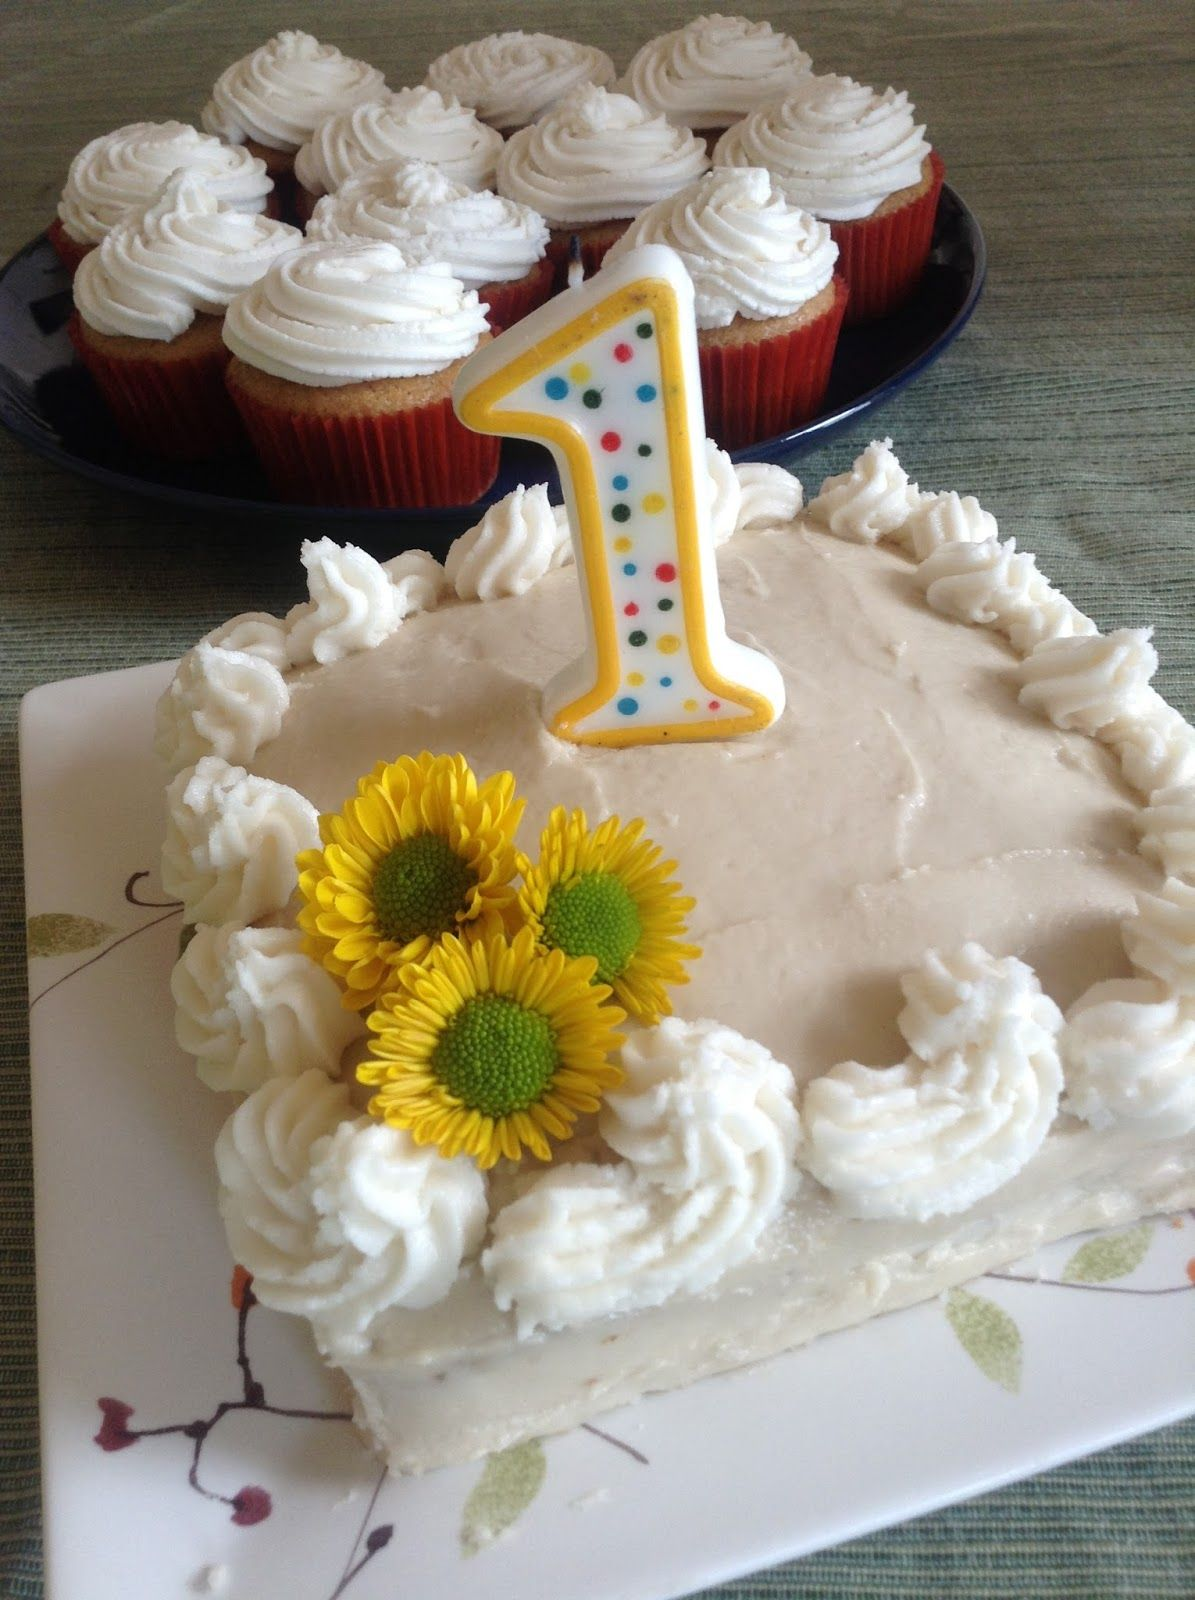 Healthy first birthday cake vegan and gluten free from